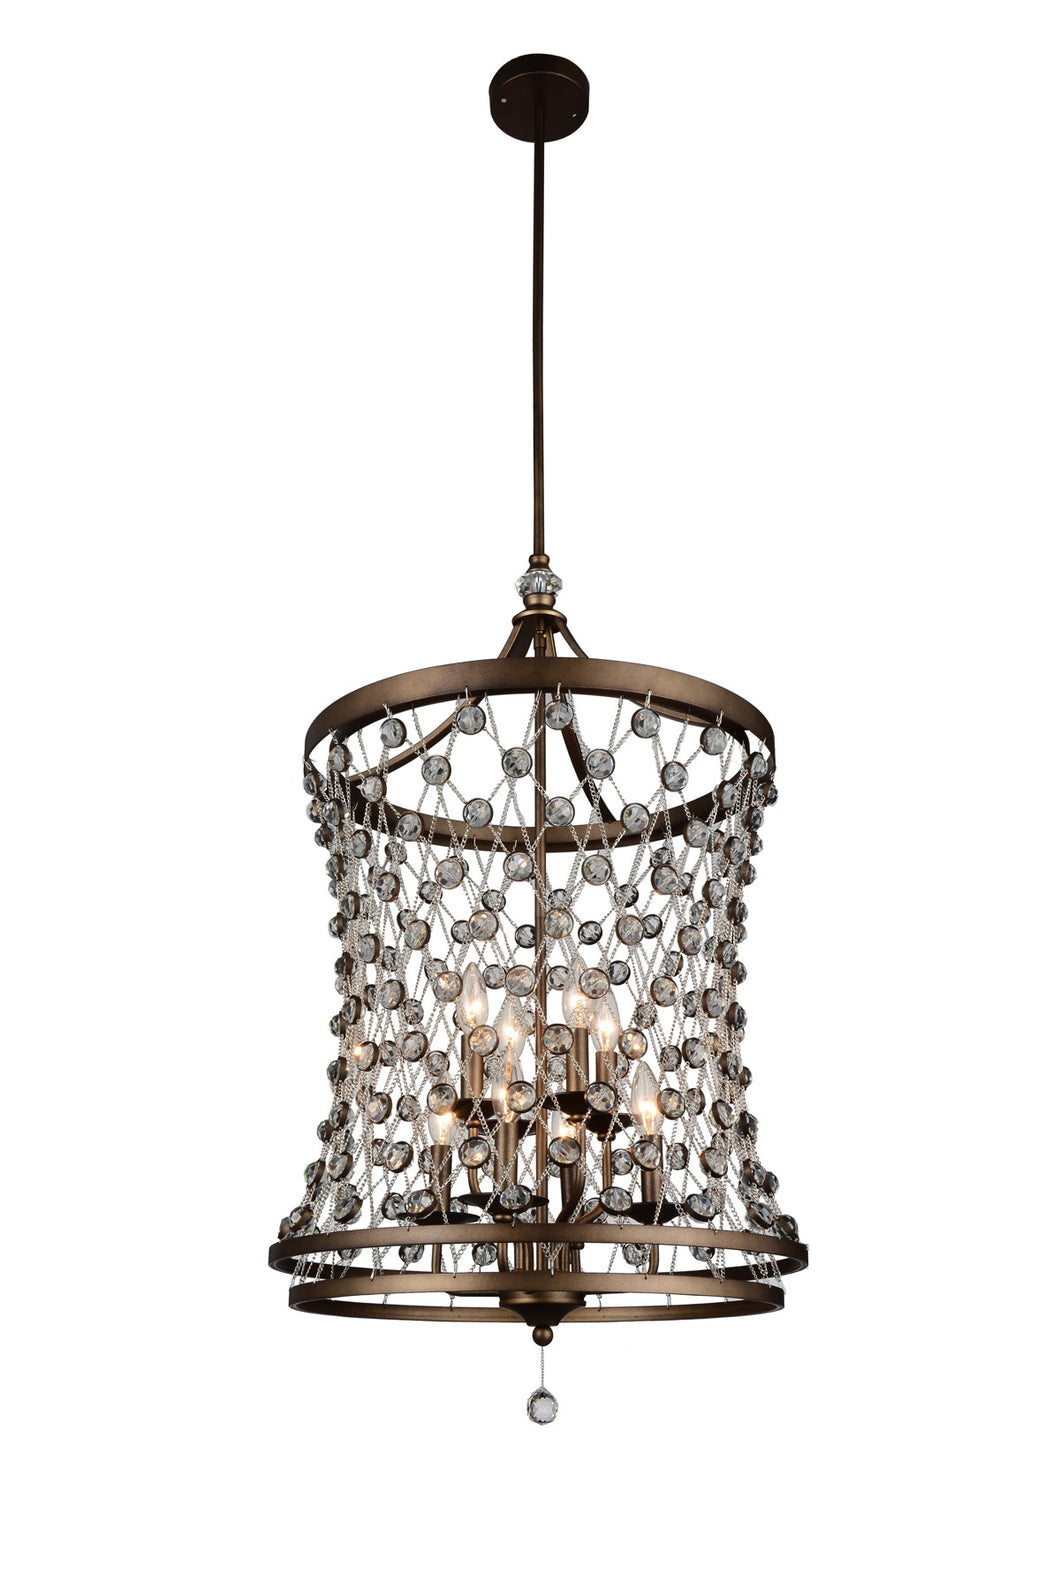 8 Light Up Chandelier with Speckled Bronze finish